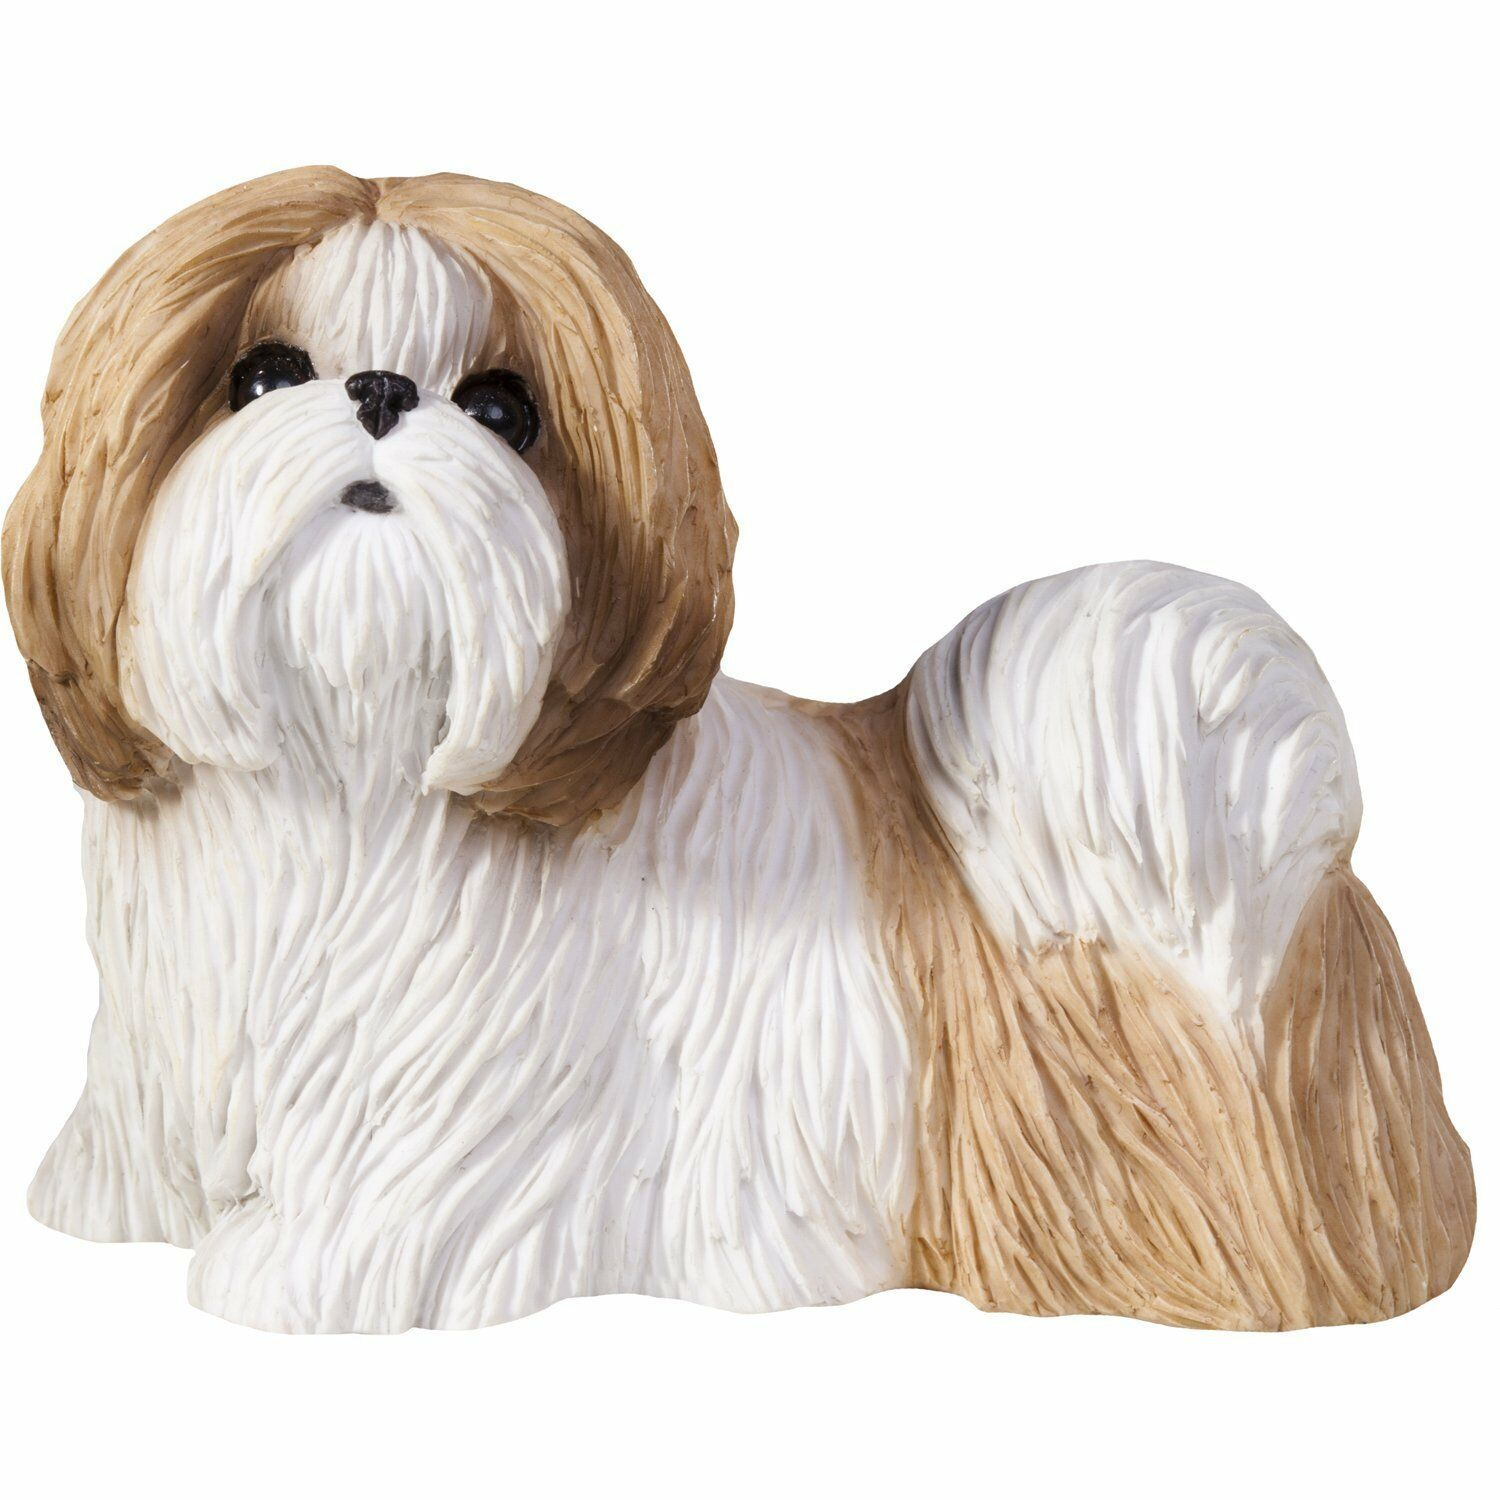 Primary image for Sandicast Sculpture: Gold and White Shih Tzu, Standing, Small Size (SS16409)